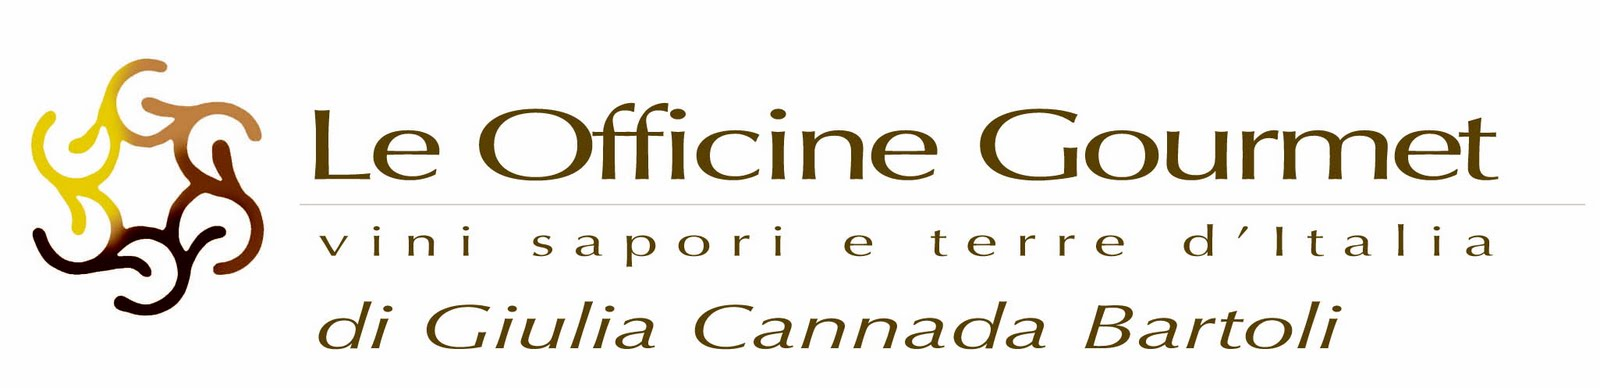 Le Officine Gourmet - di Giulia Cannada Bartoli